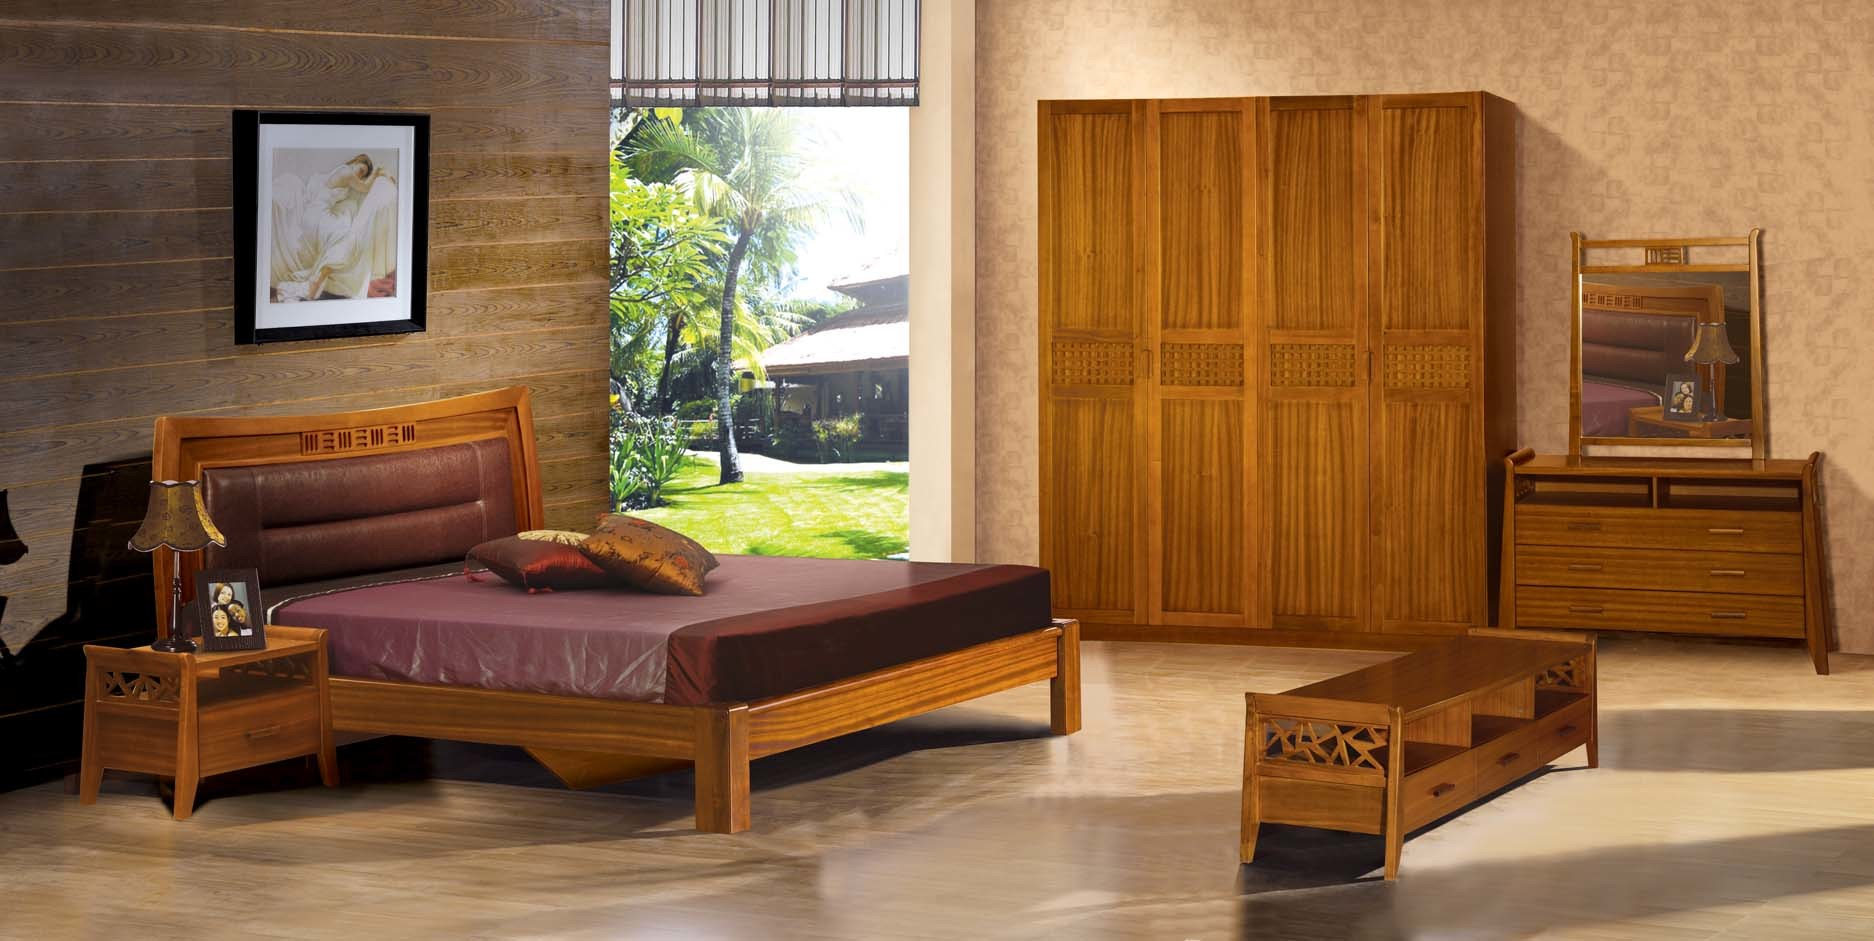 Impressive Teak Wood Bedroom Furniture 1874 x 941 · 252 kB · jpeg